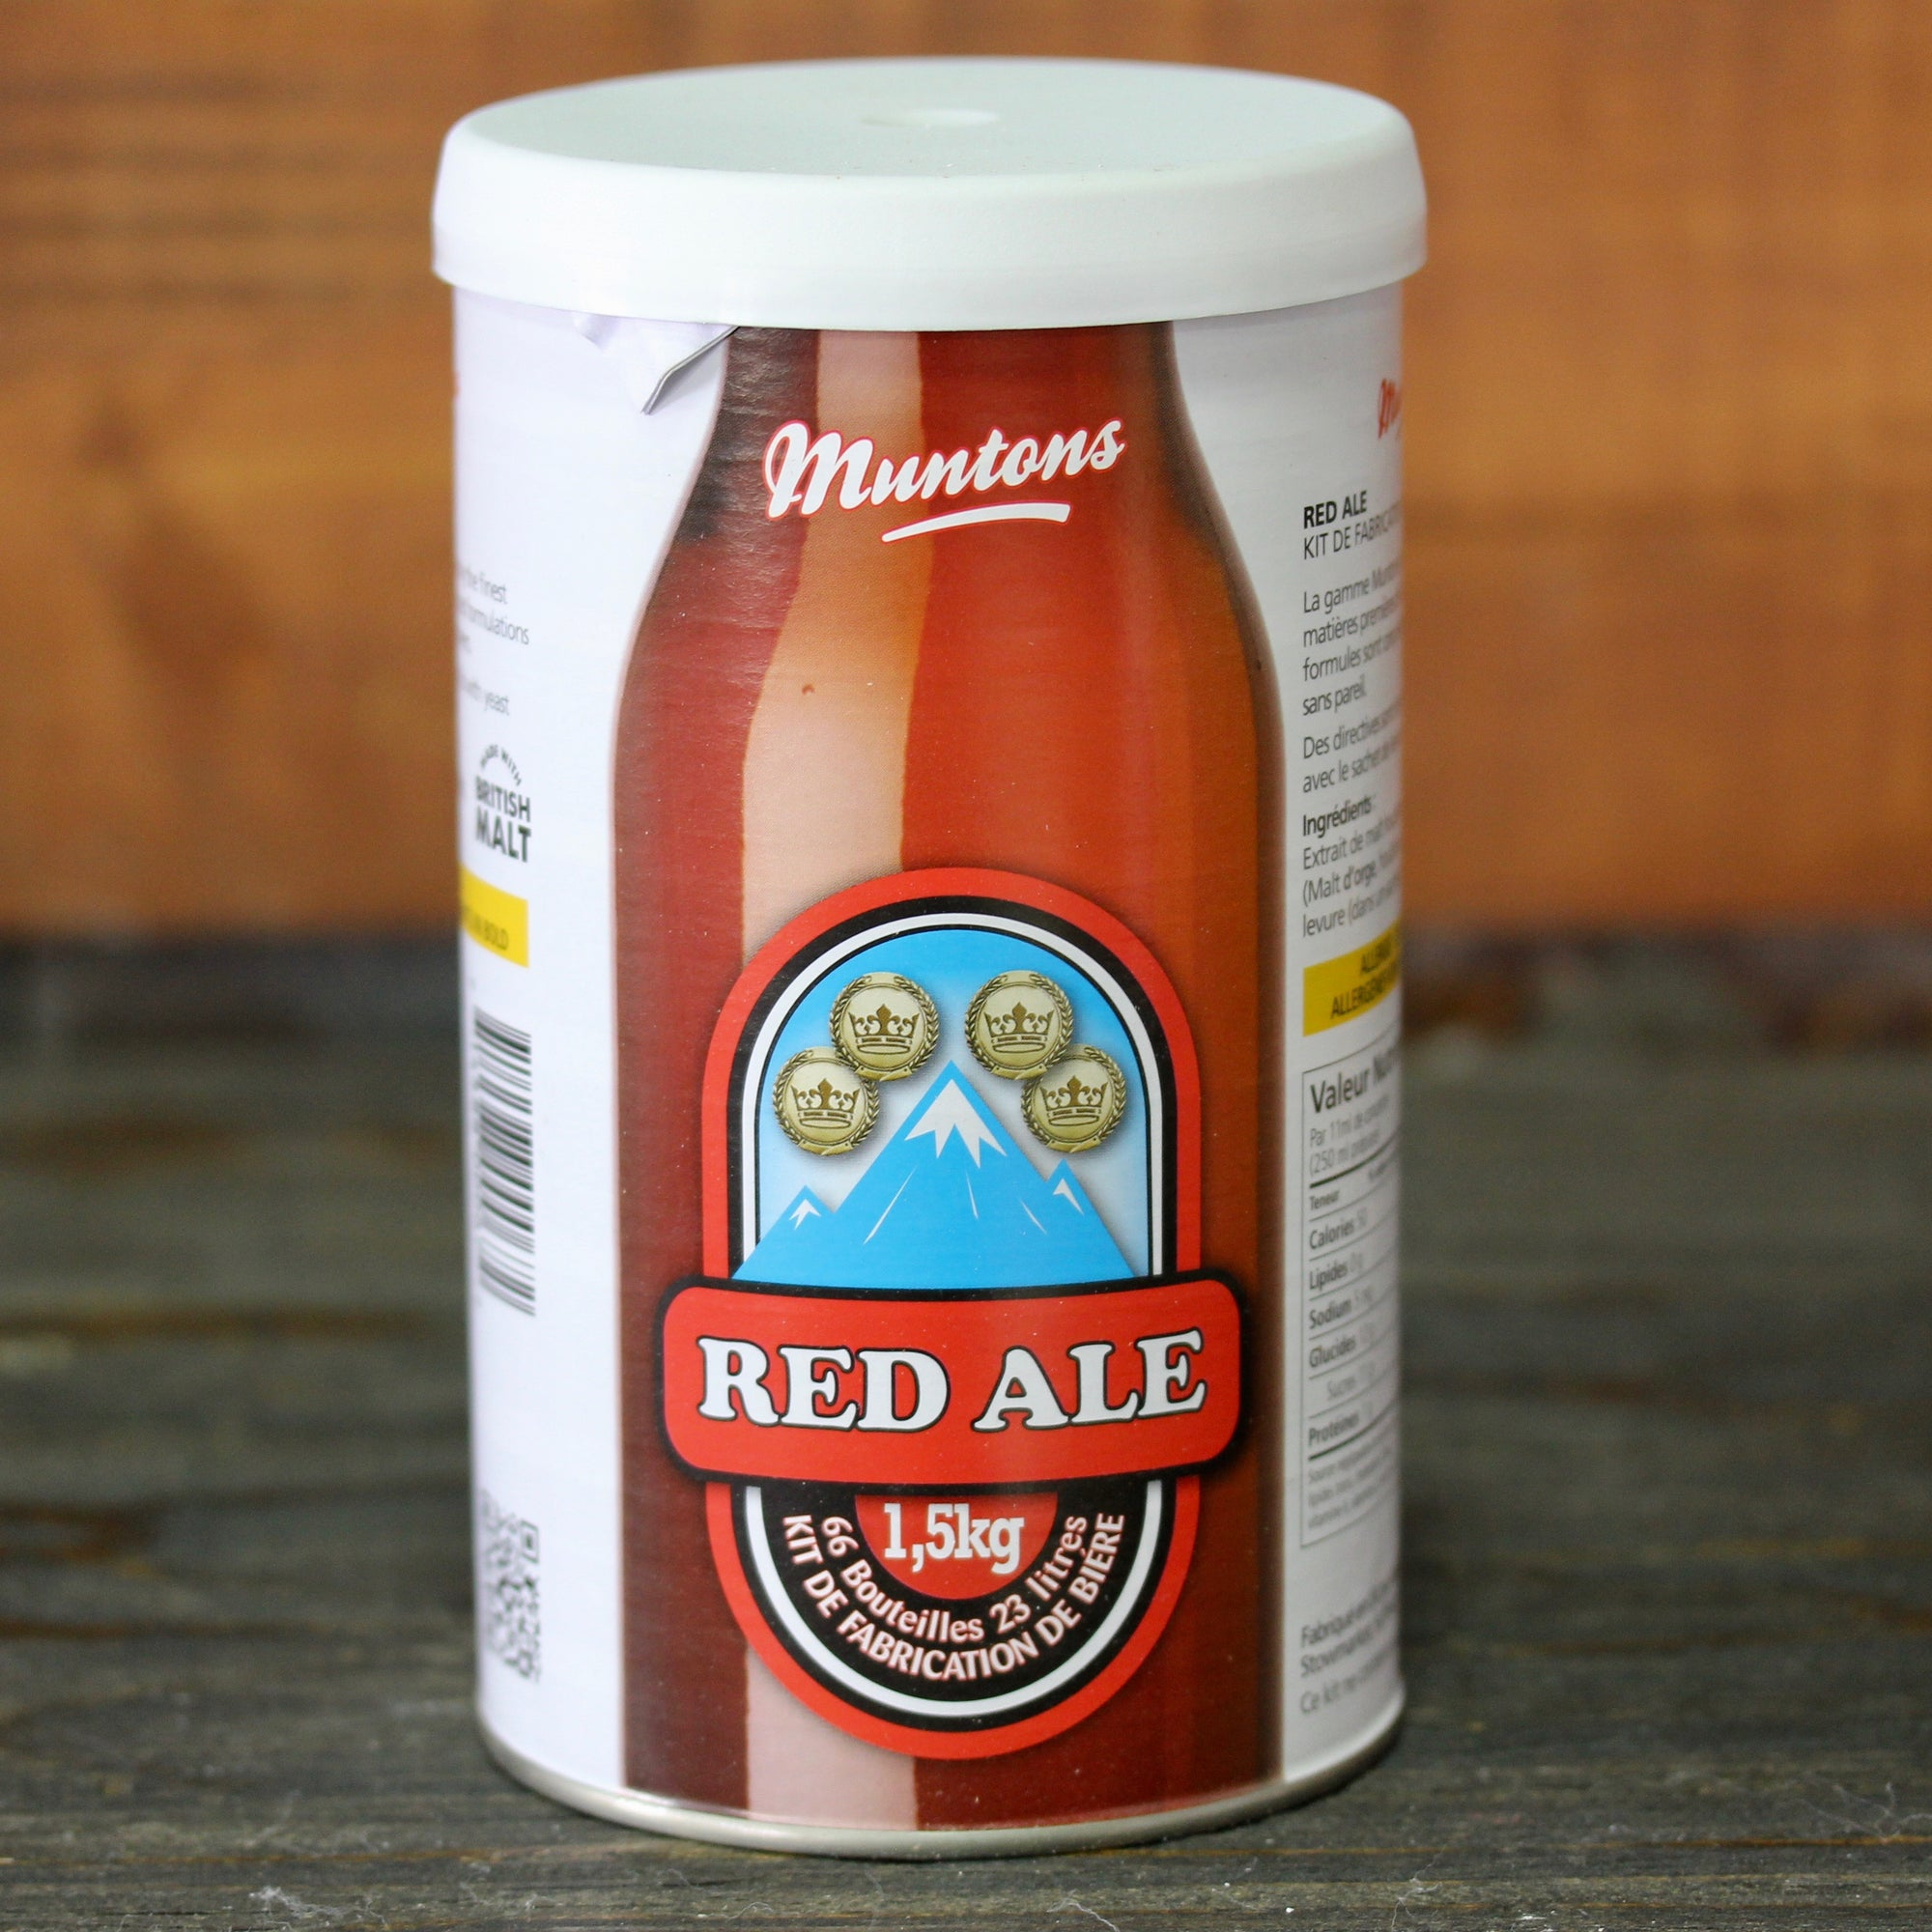 Muntons Beer Kit - Red Ale